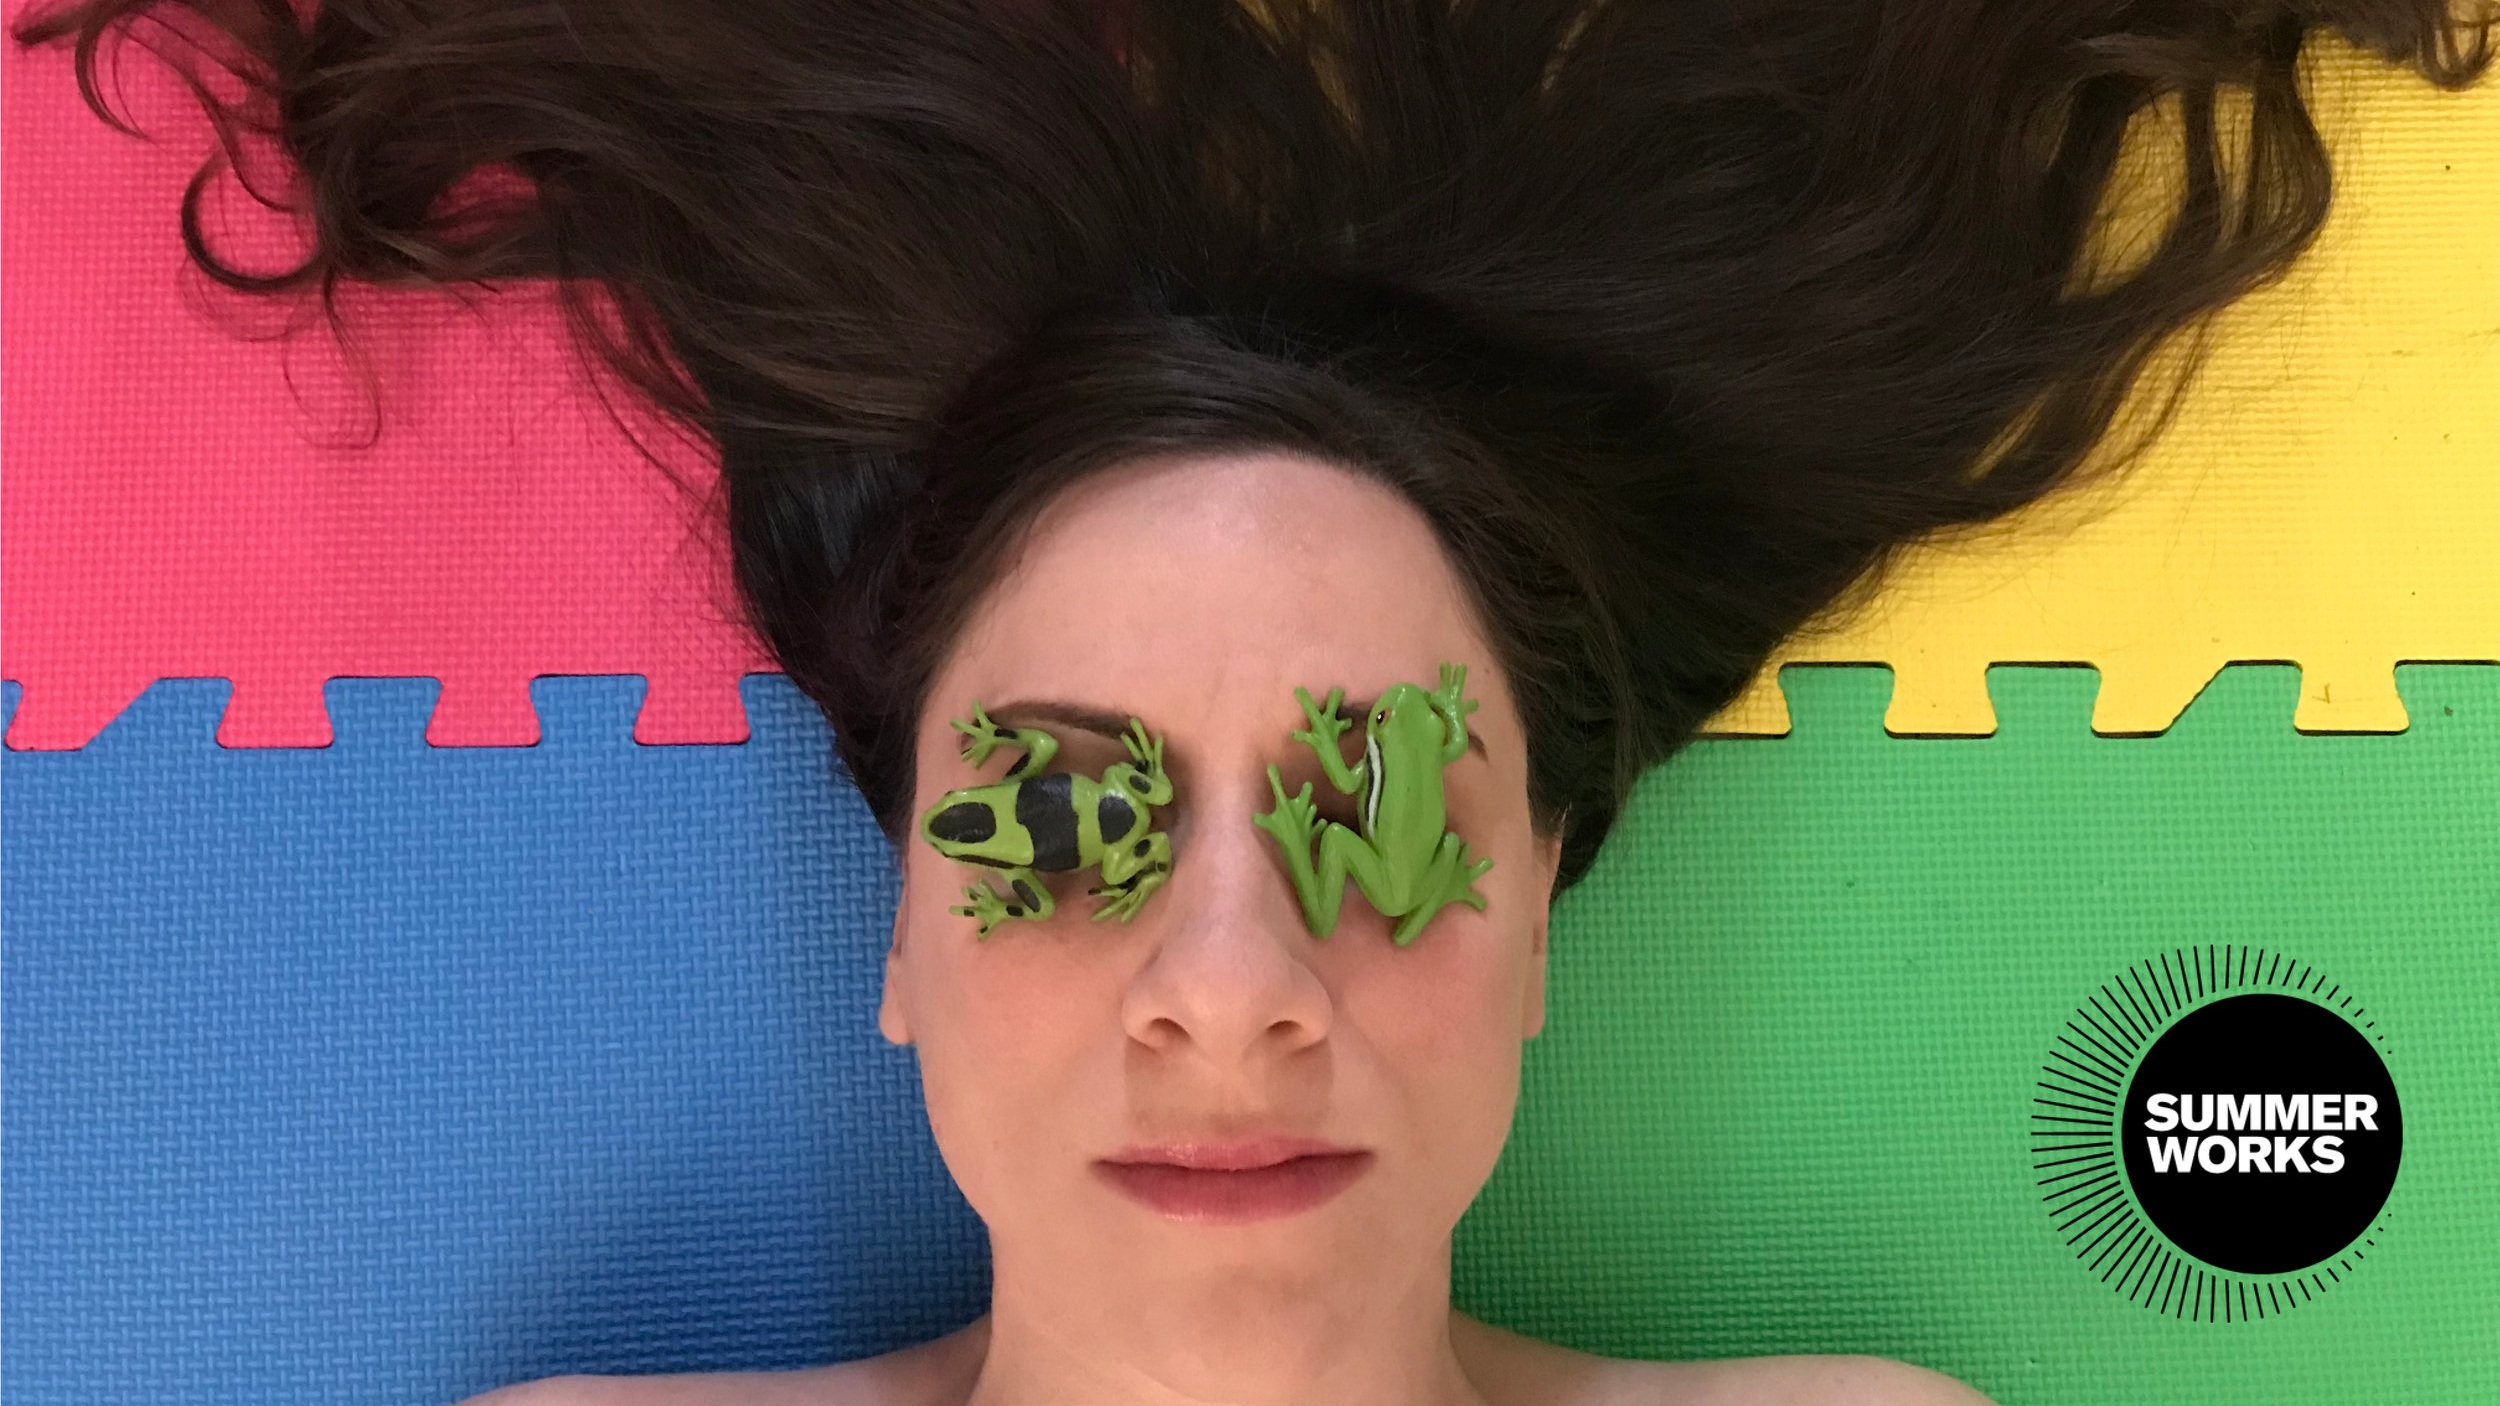 August 10-18, 2019 - Part of the SummerWorks Performance Festival Lab